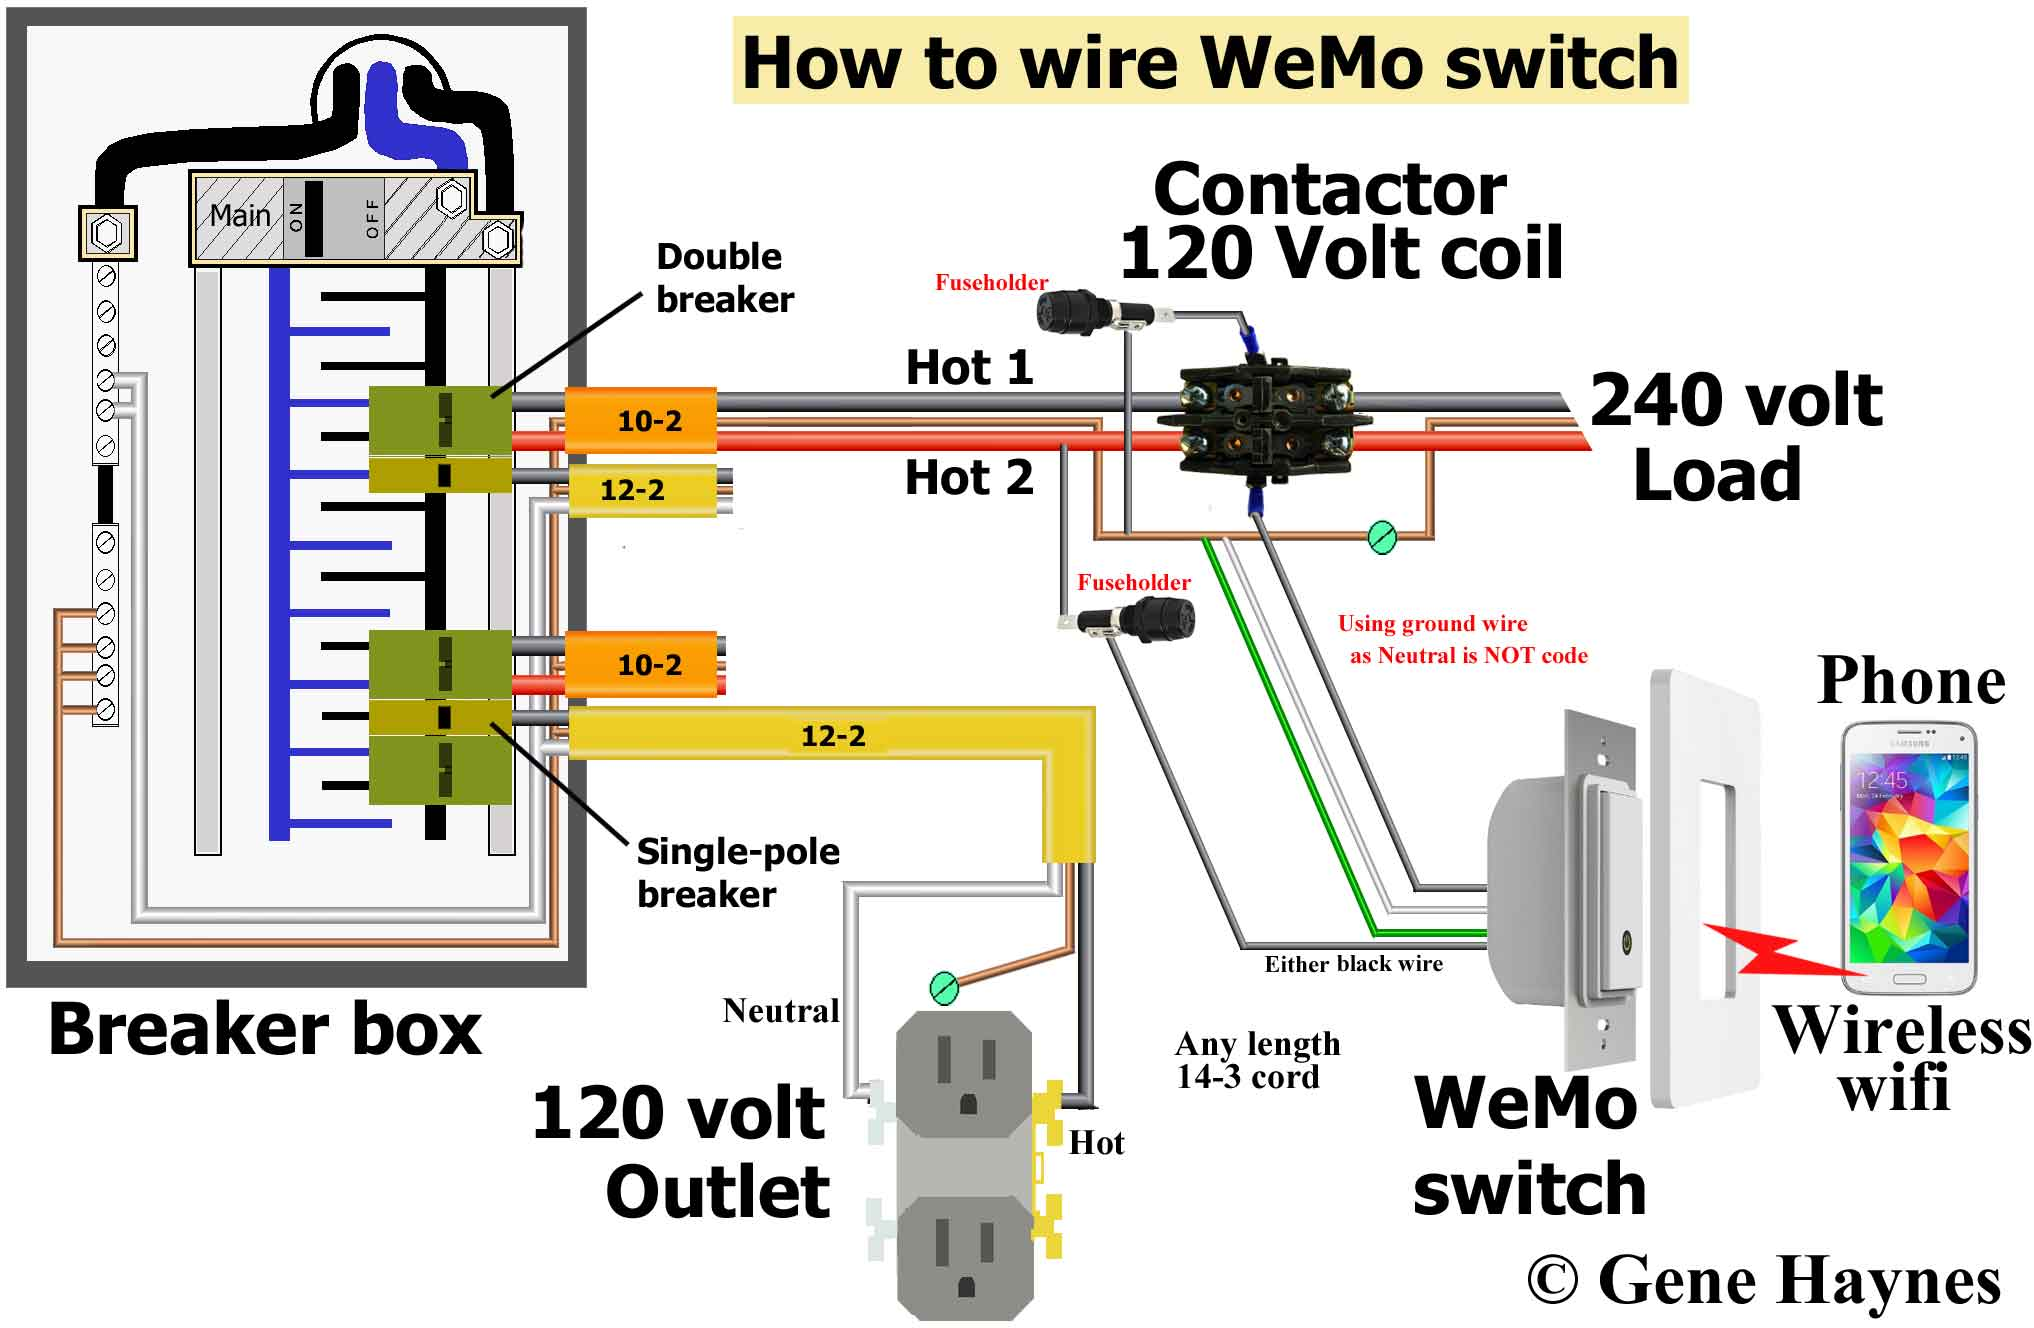 240 Volt Wiring Diagram -Yamaha Blaster Wiring | Begeboy Wiring Diagram  Source | 99 Park Avenue Wiring Diagram Interior |  | Begeboy Wiring Diagram Source